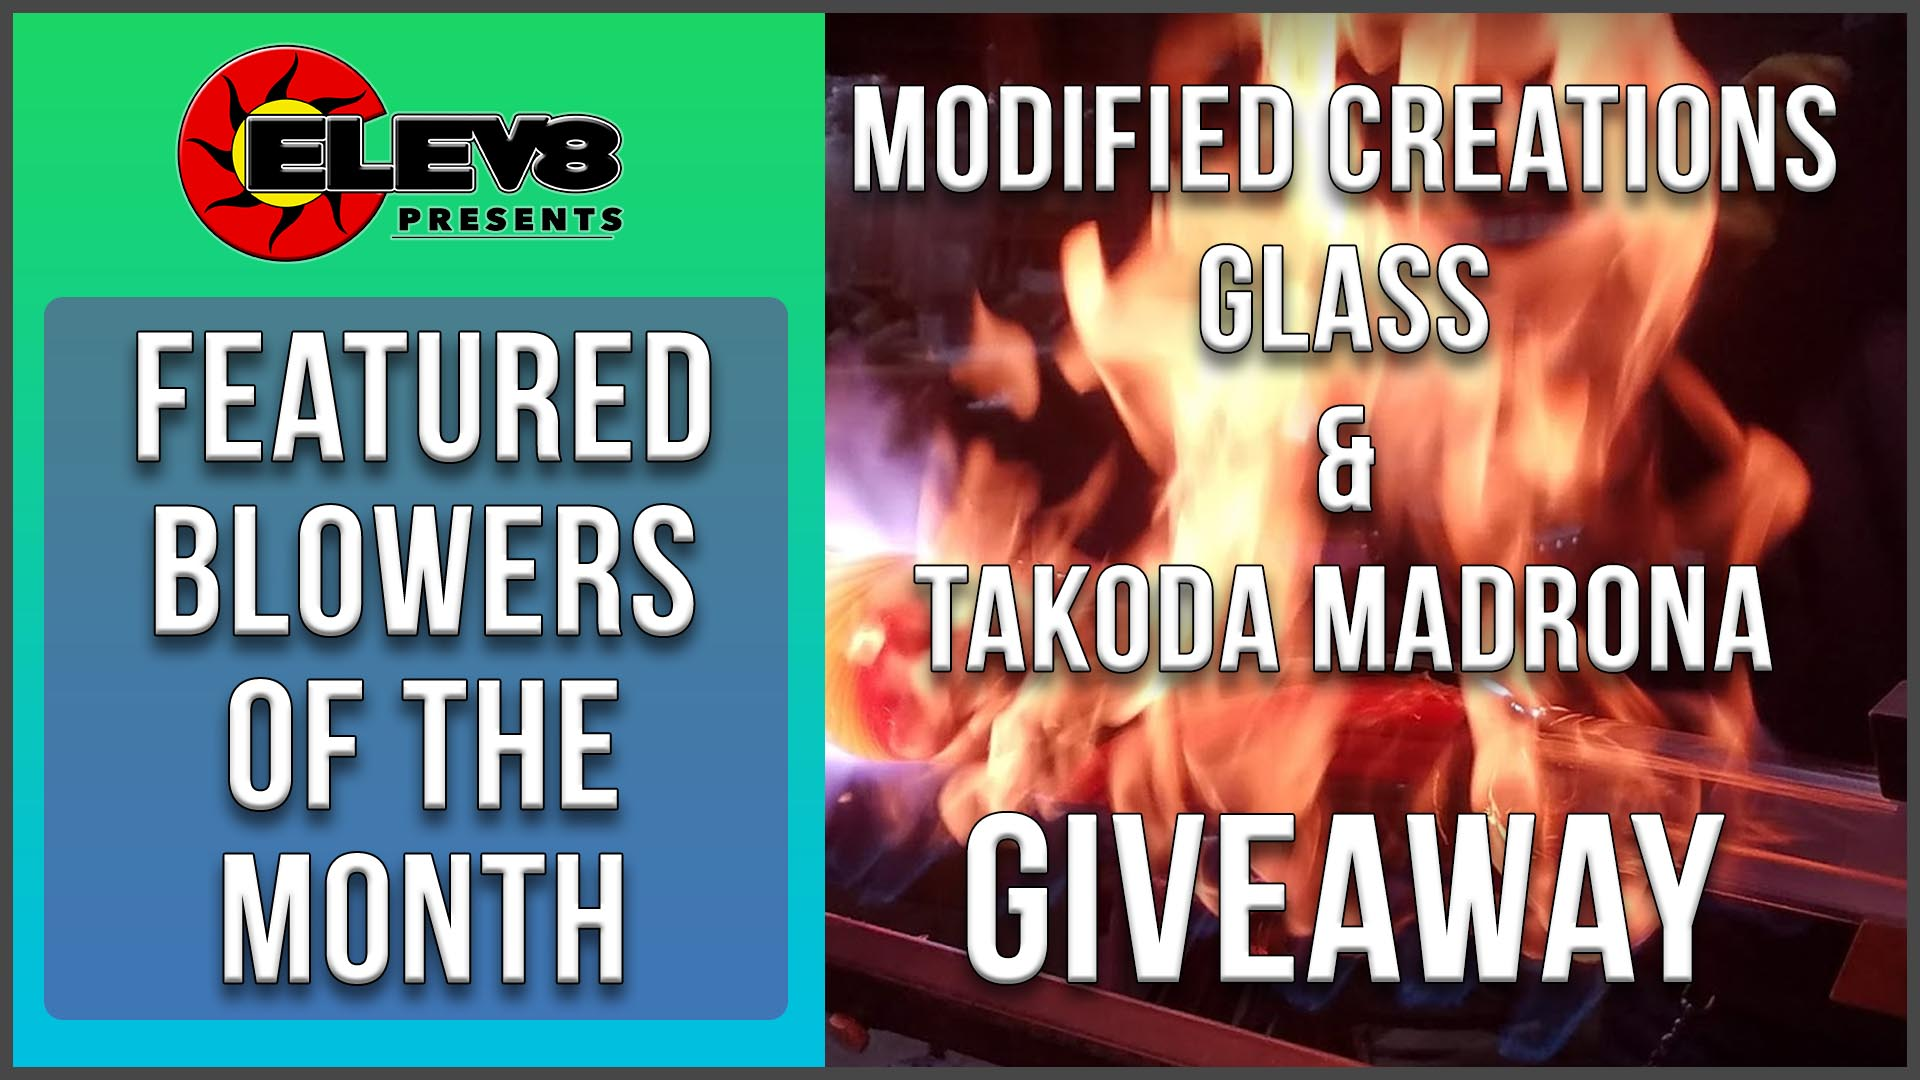 featured-glassblower-giveaway-modified-and-takoda.jpg